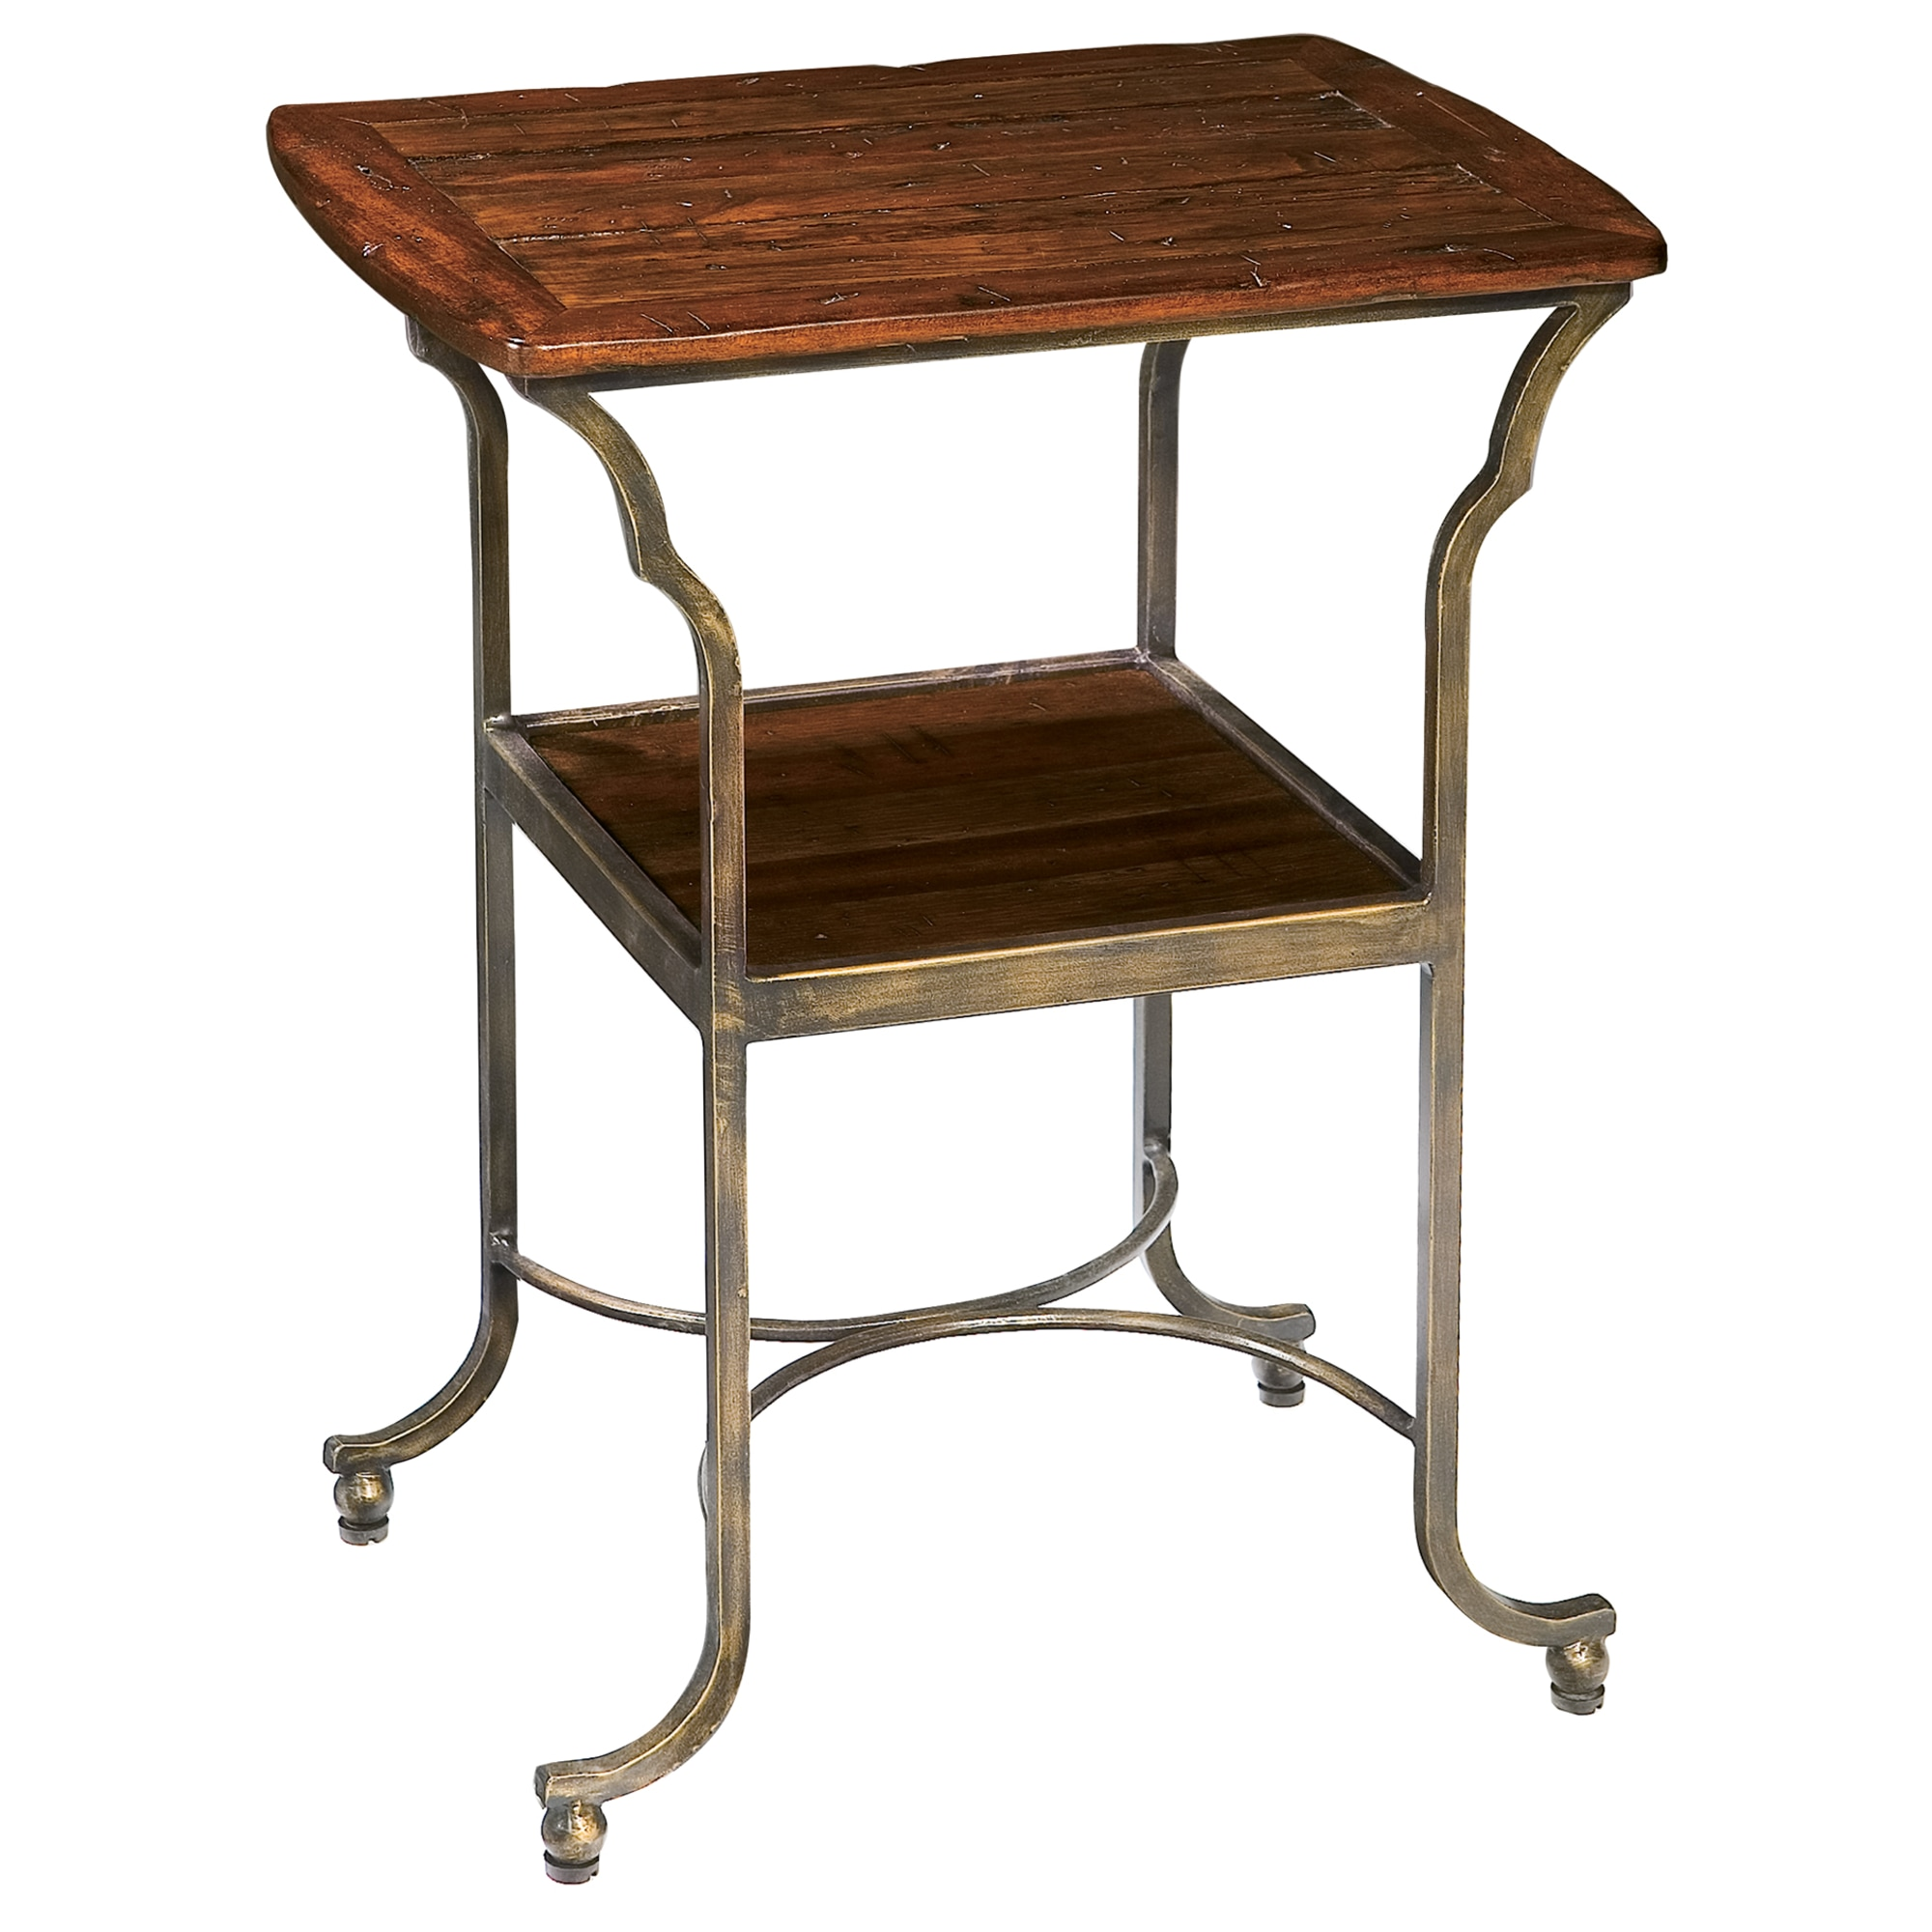 Image for 8-7216 Rue de Bac Metal Base Side Table from Hekman Official Website